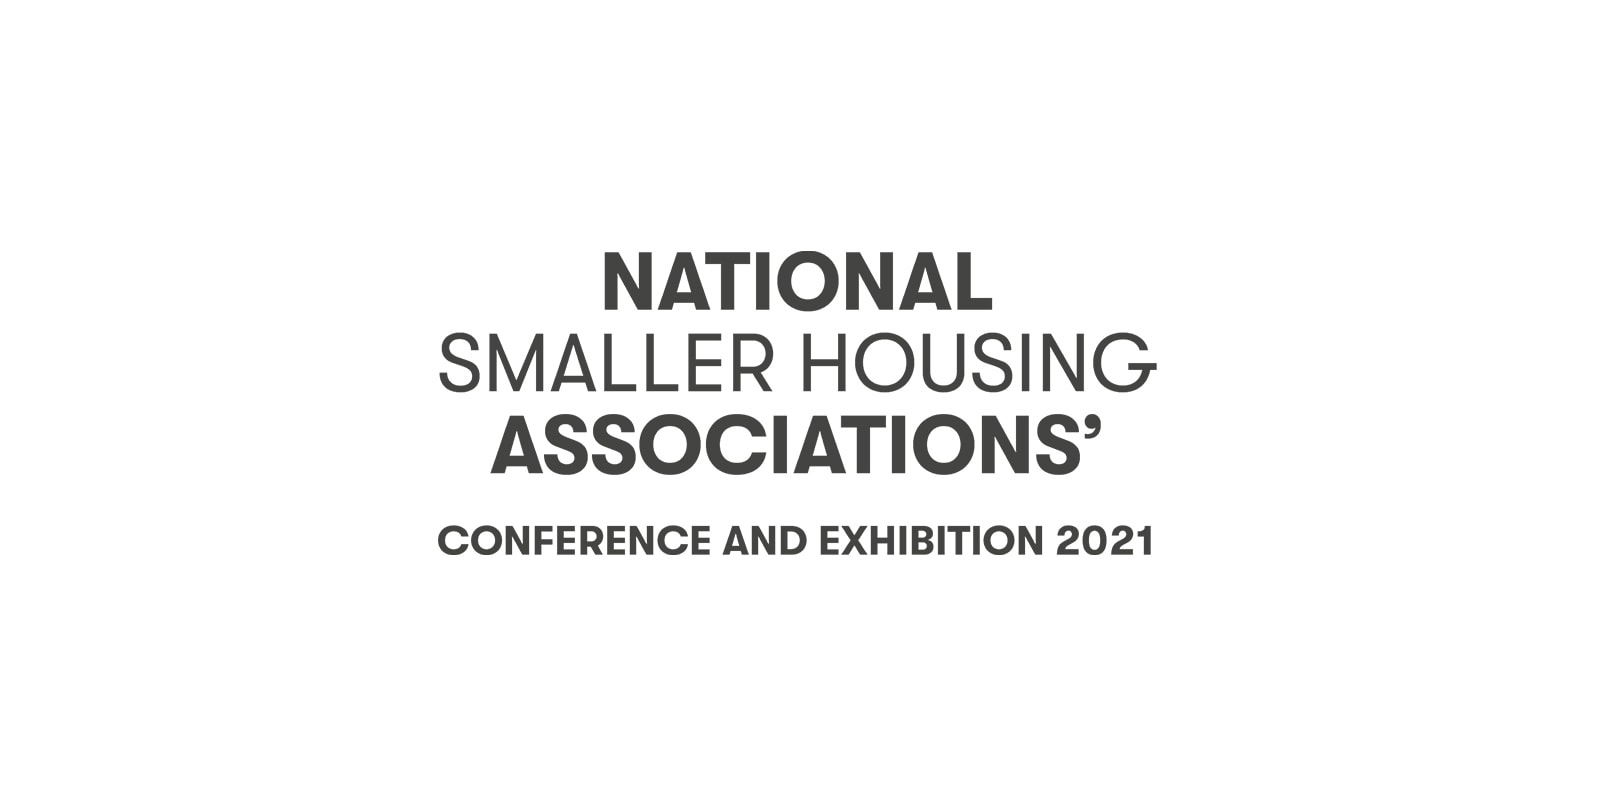 National Housing Federation – National Smaller Housing Associations' Conference and Exhibition 2021